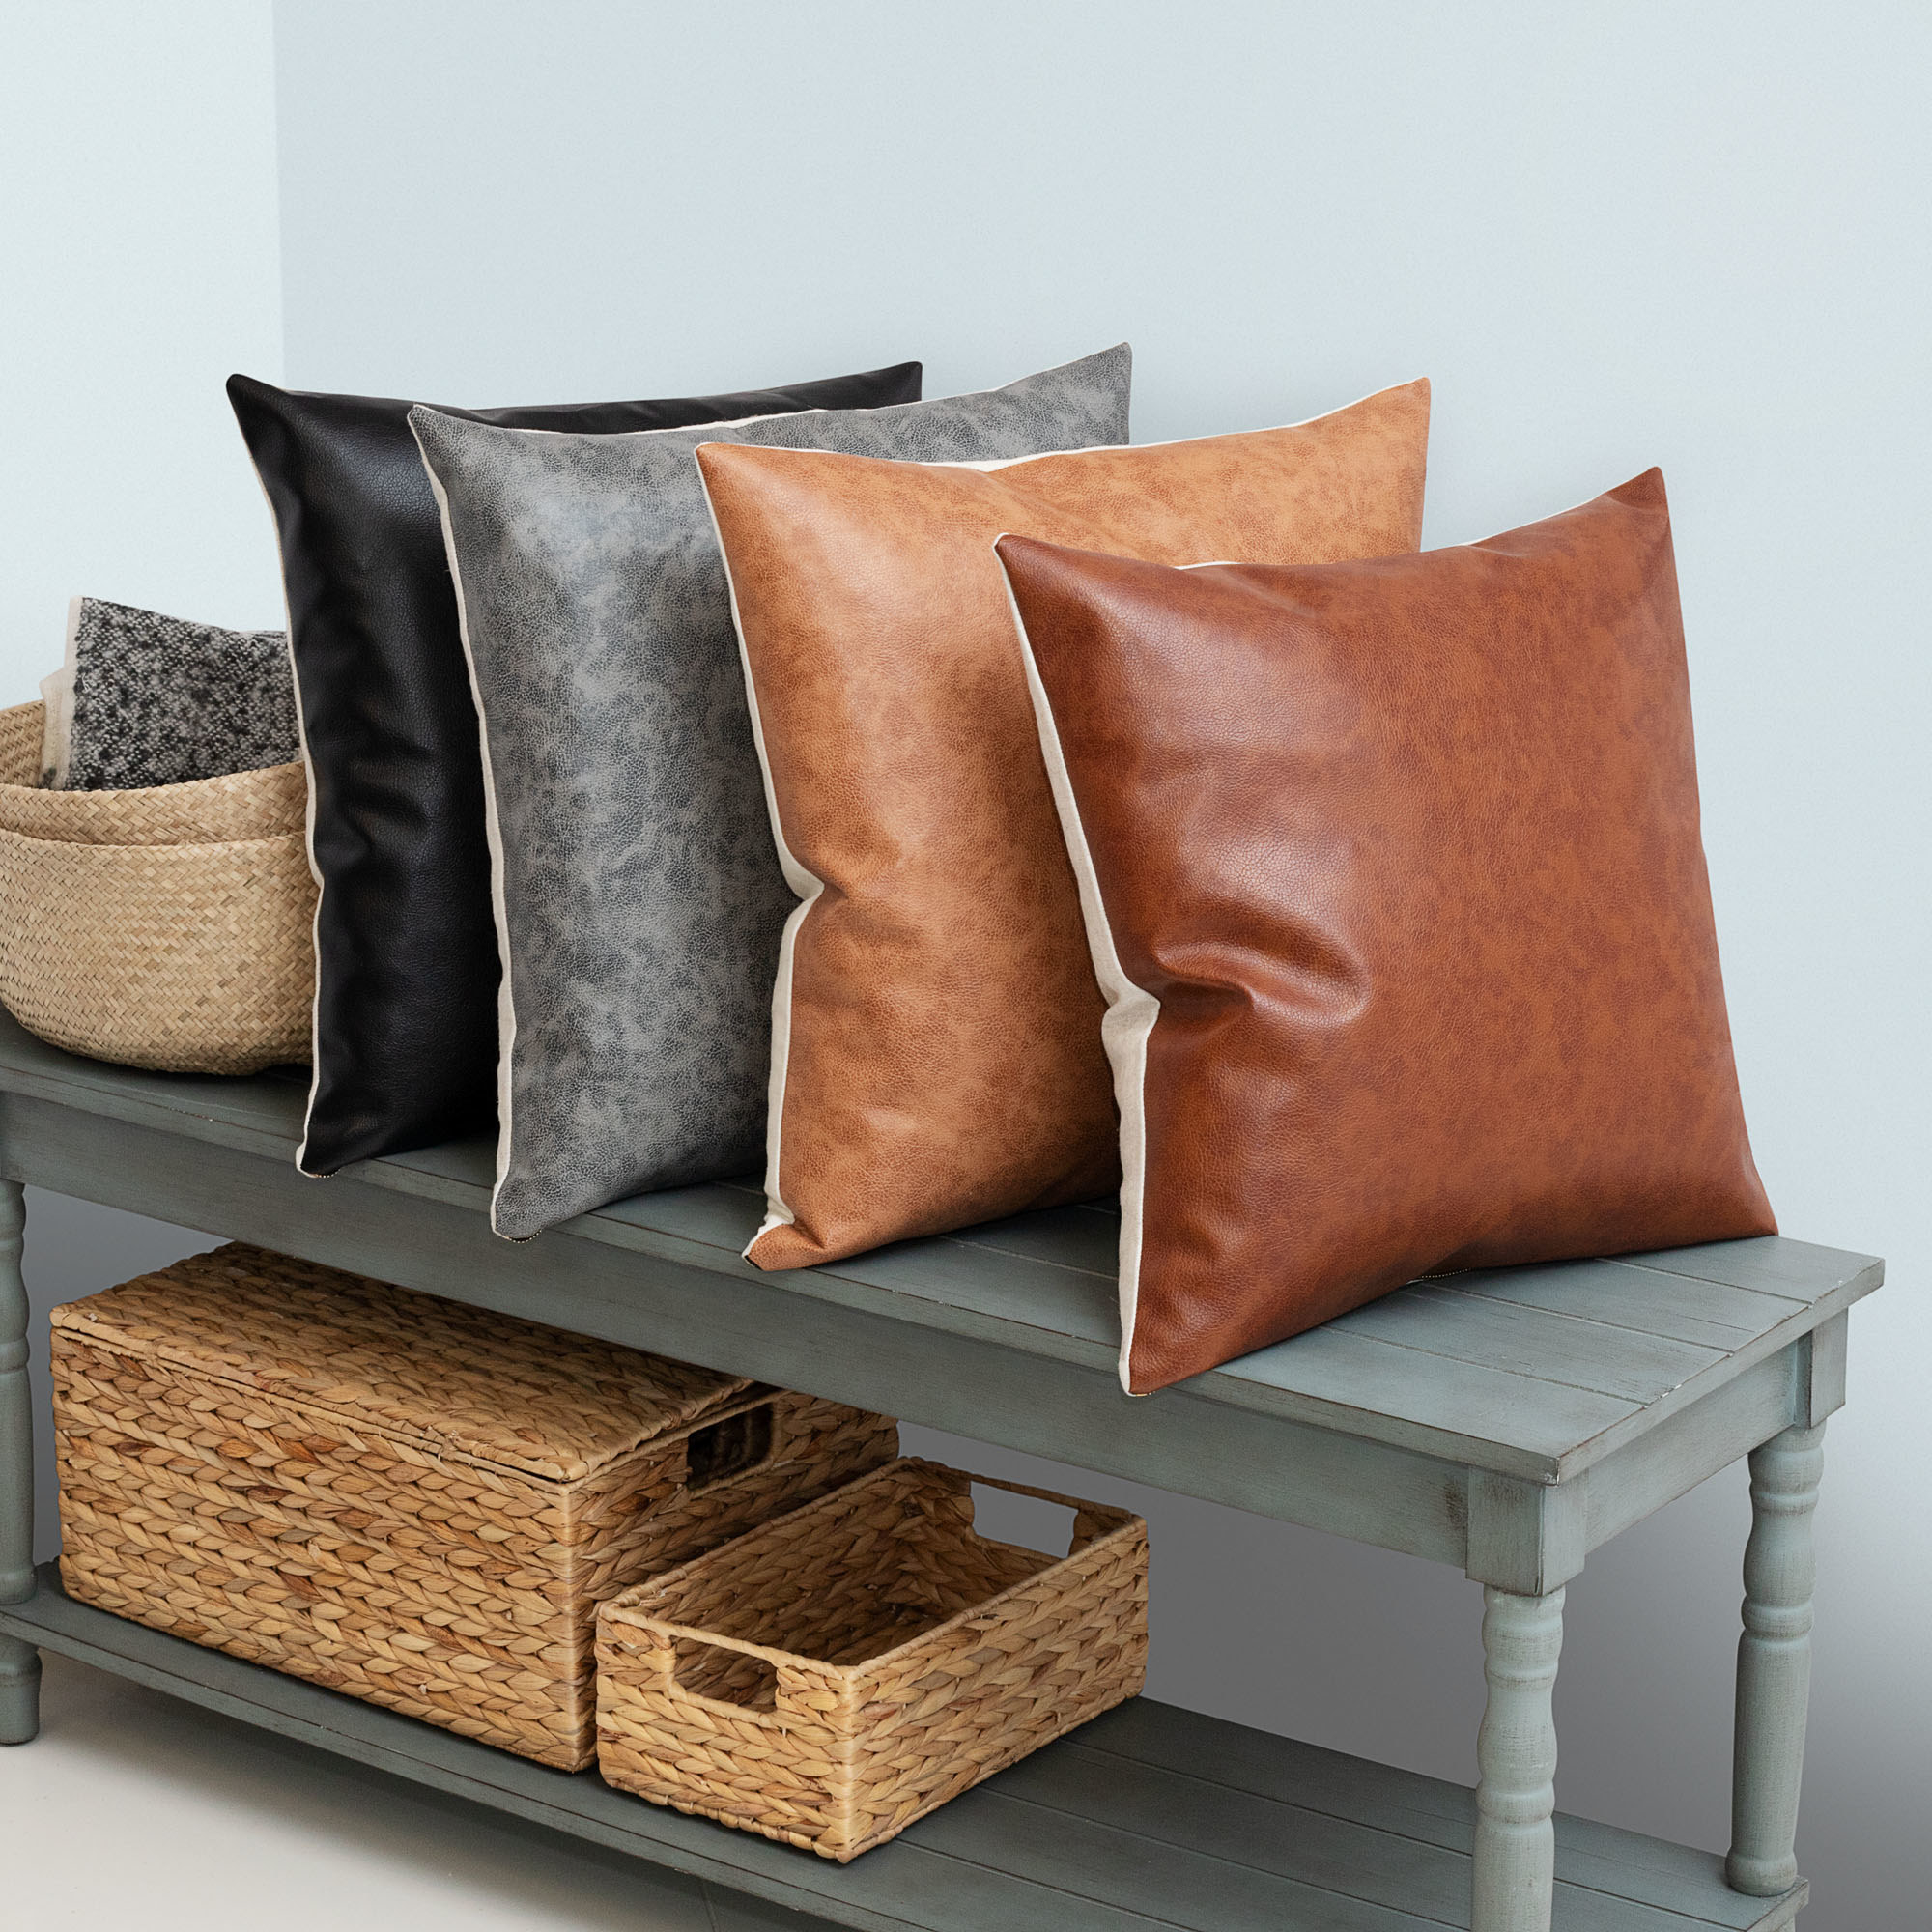 Faux-leather pillows with reversible sides